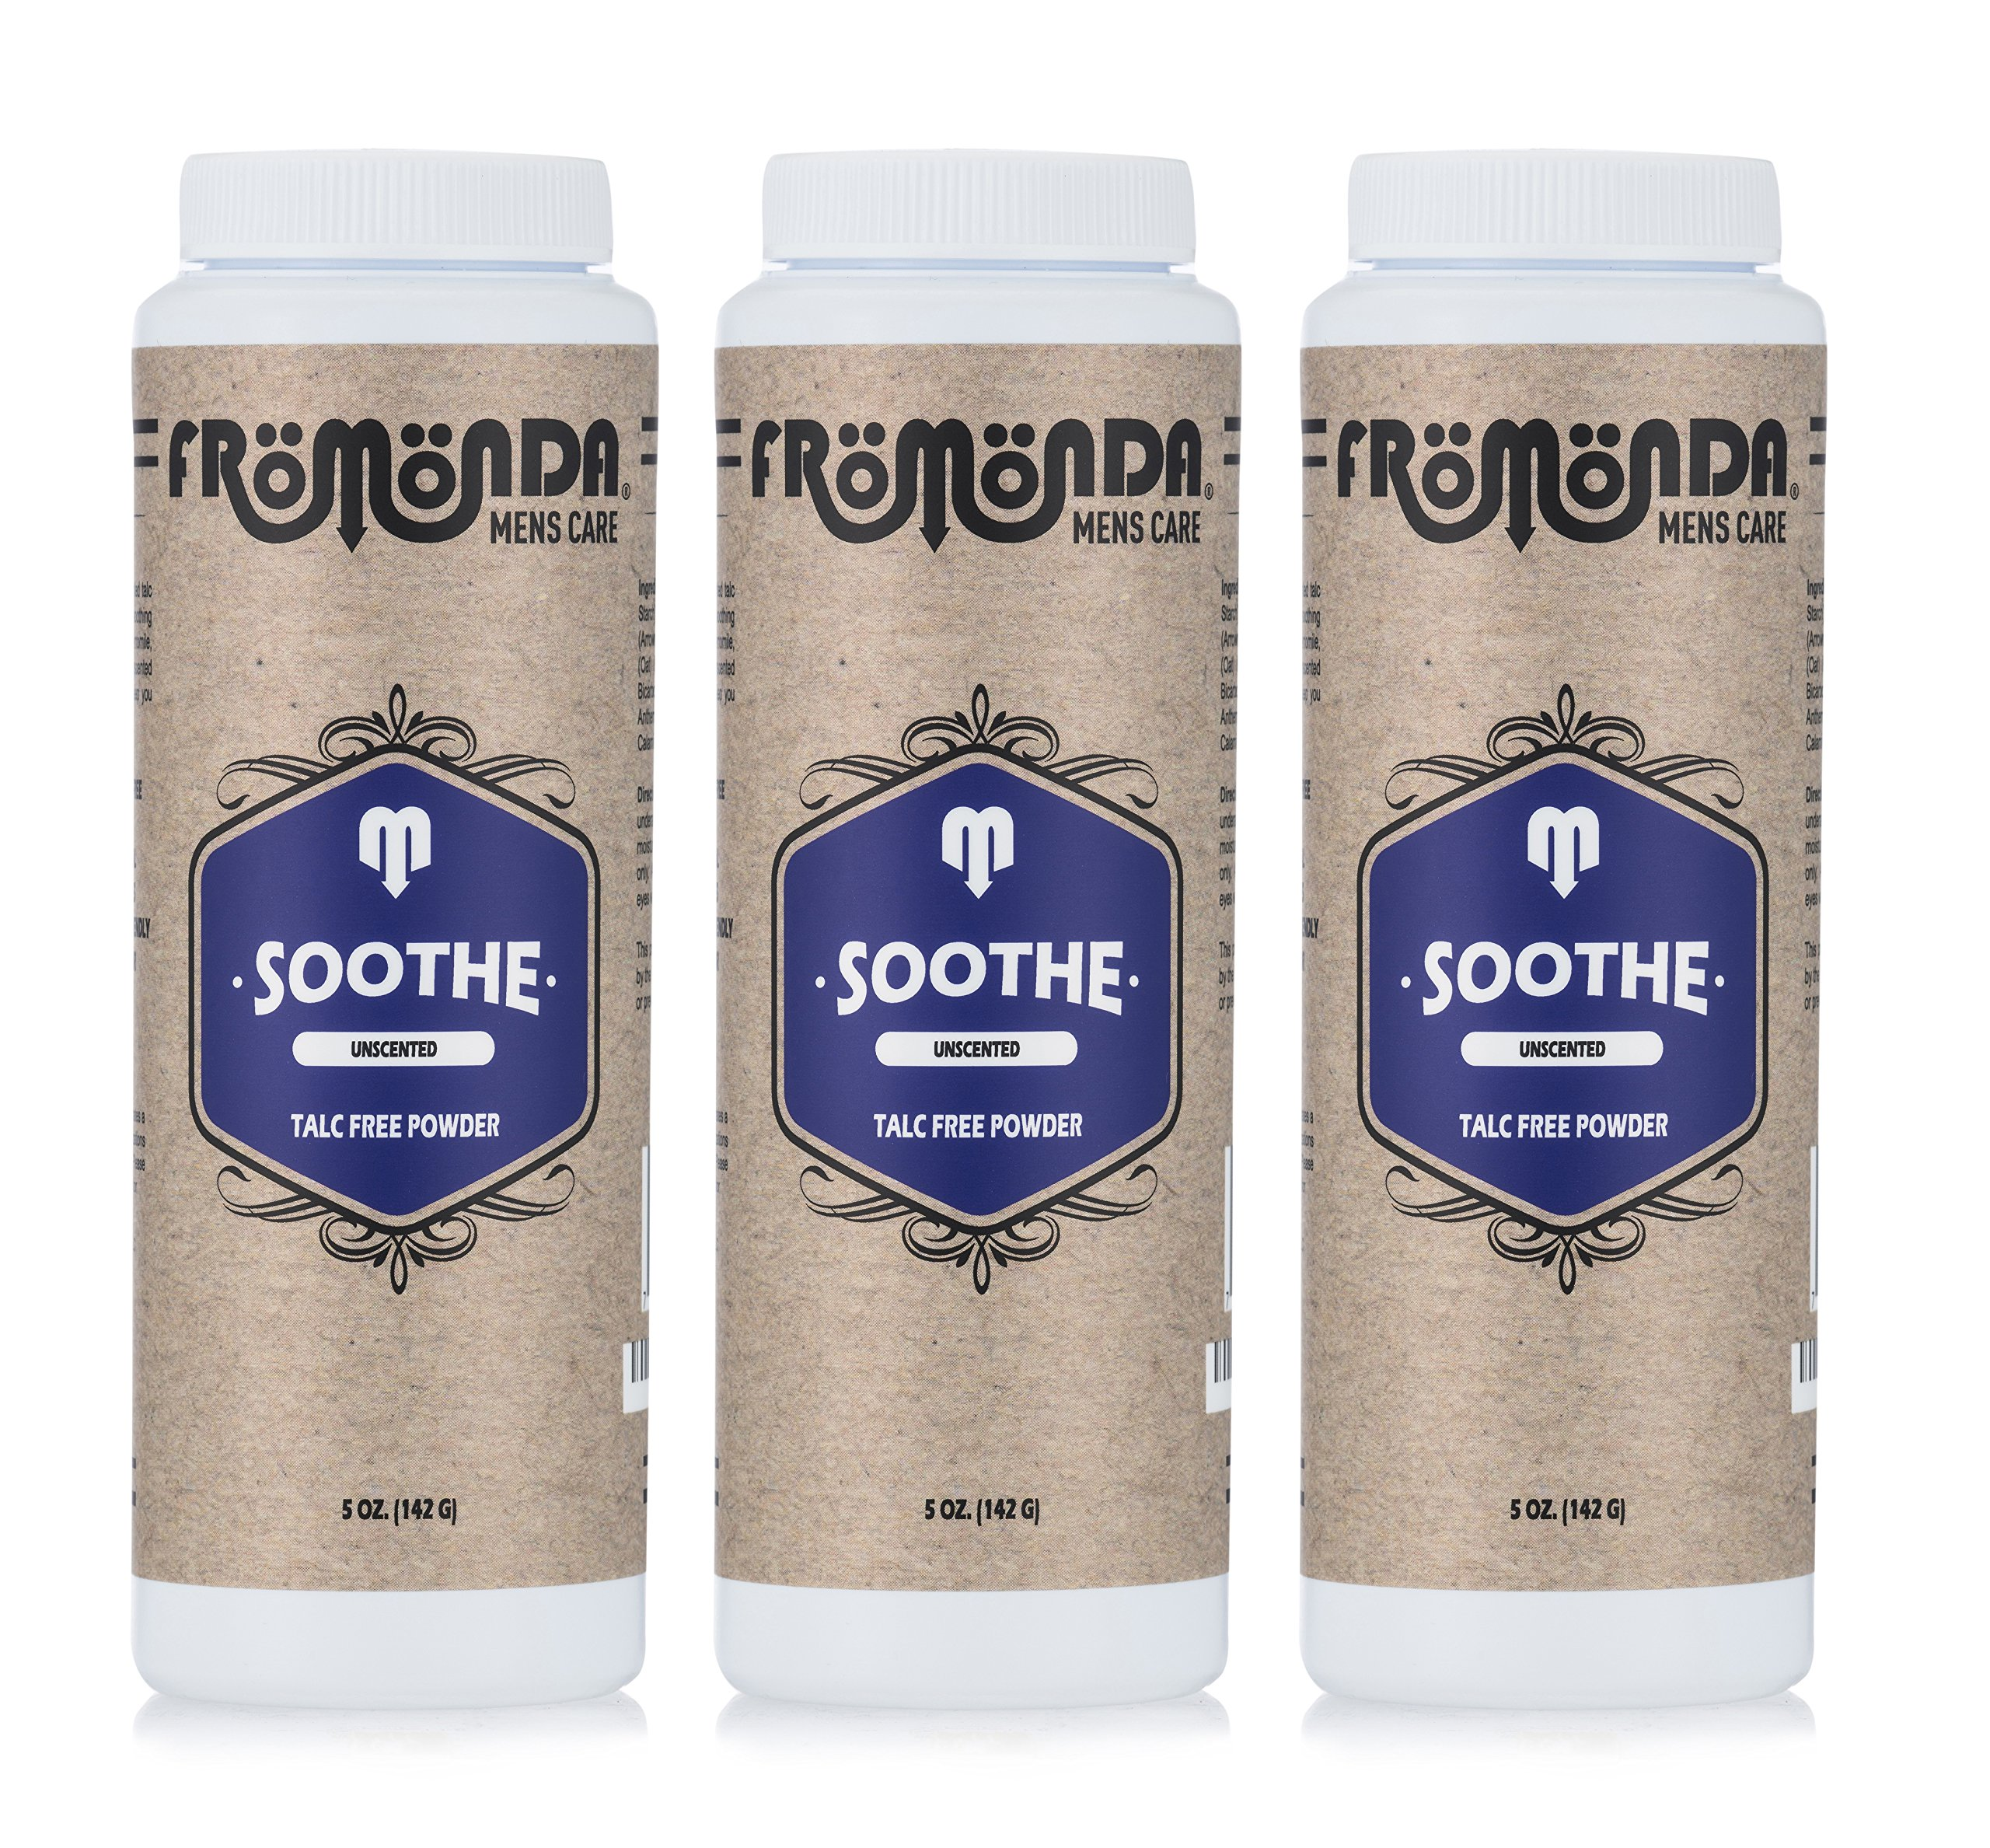 Fromonda Soothe Unscented Talc Free Body Powder - All Natural Dry Deodorant For Men & Women - Fragrance Free Athletic Dusting Powder – 5 OZ – 3 Pack